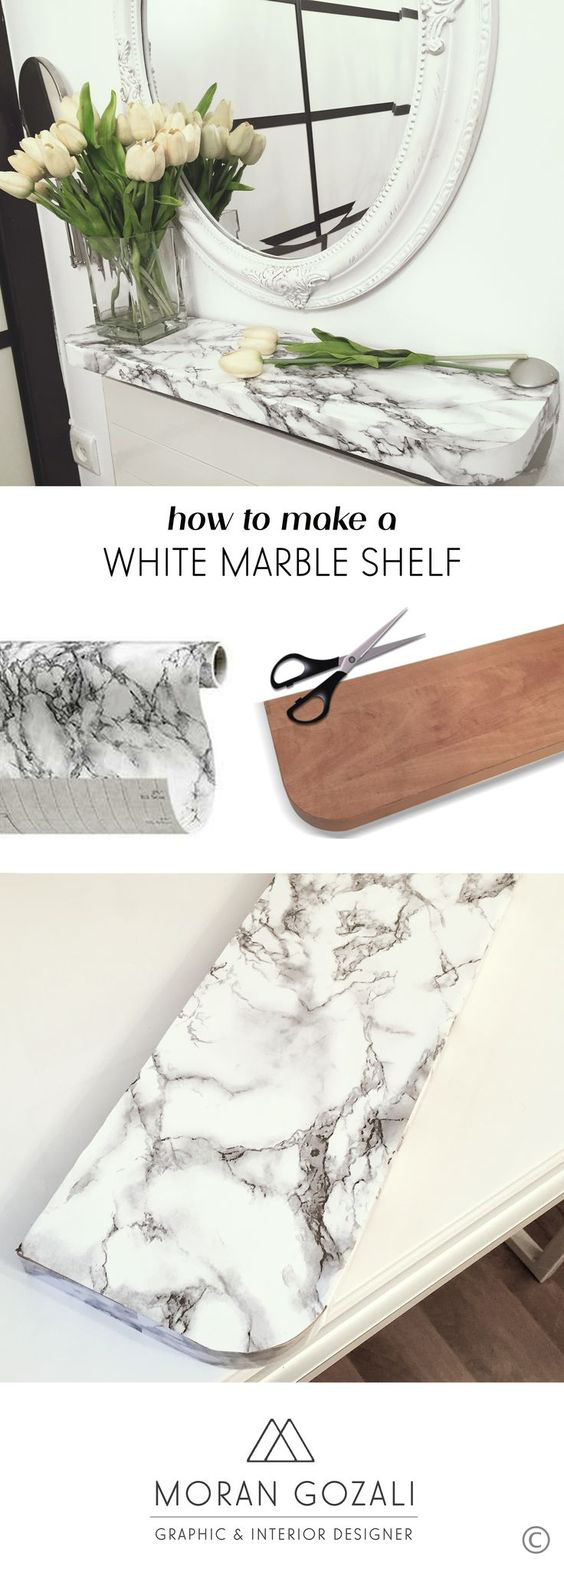 diy-marble-shelf